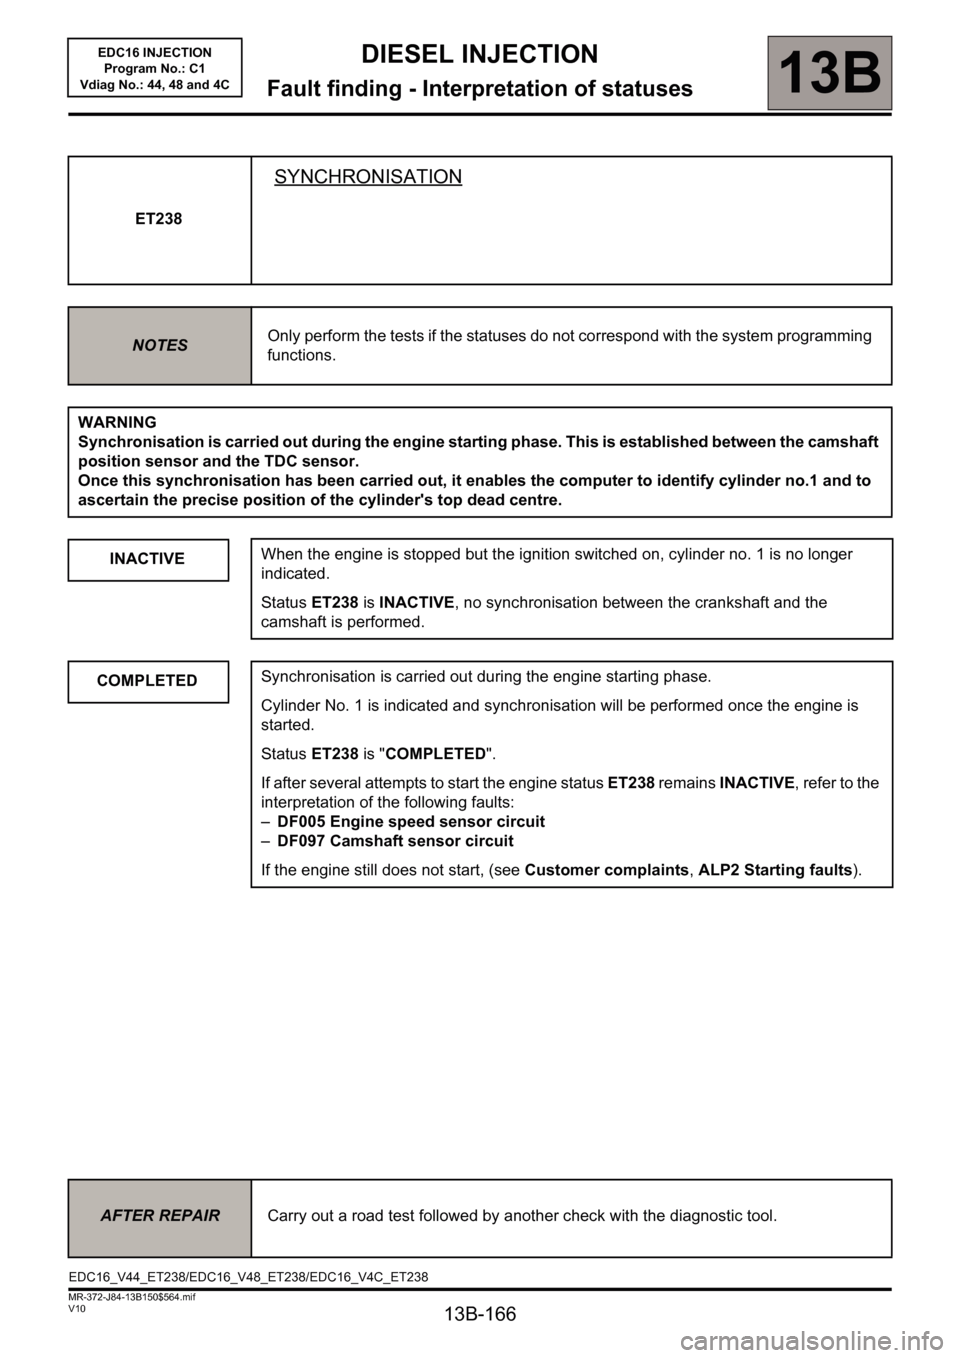 RENAULT SCENIC 2011 J95 / 3.G Engine And Peripherals EDC16 Injection Workshop Manual, Page 166